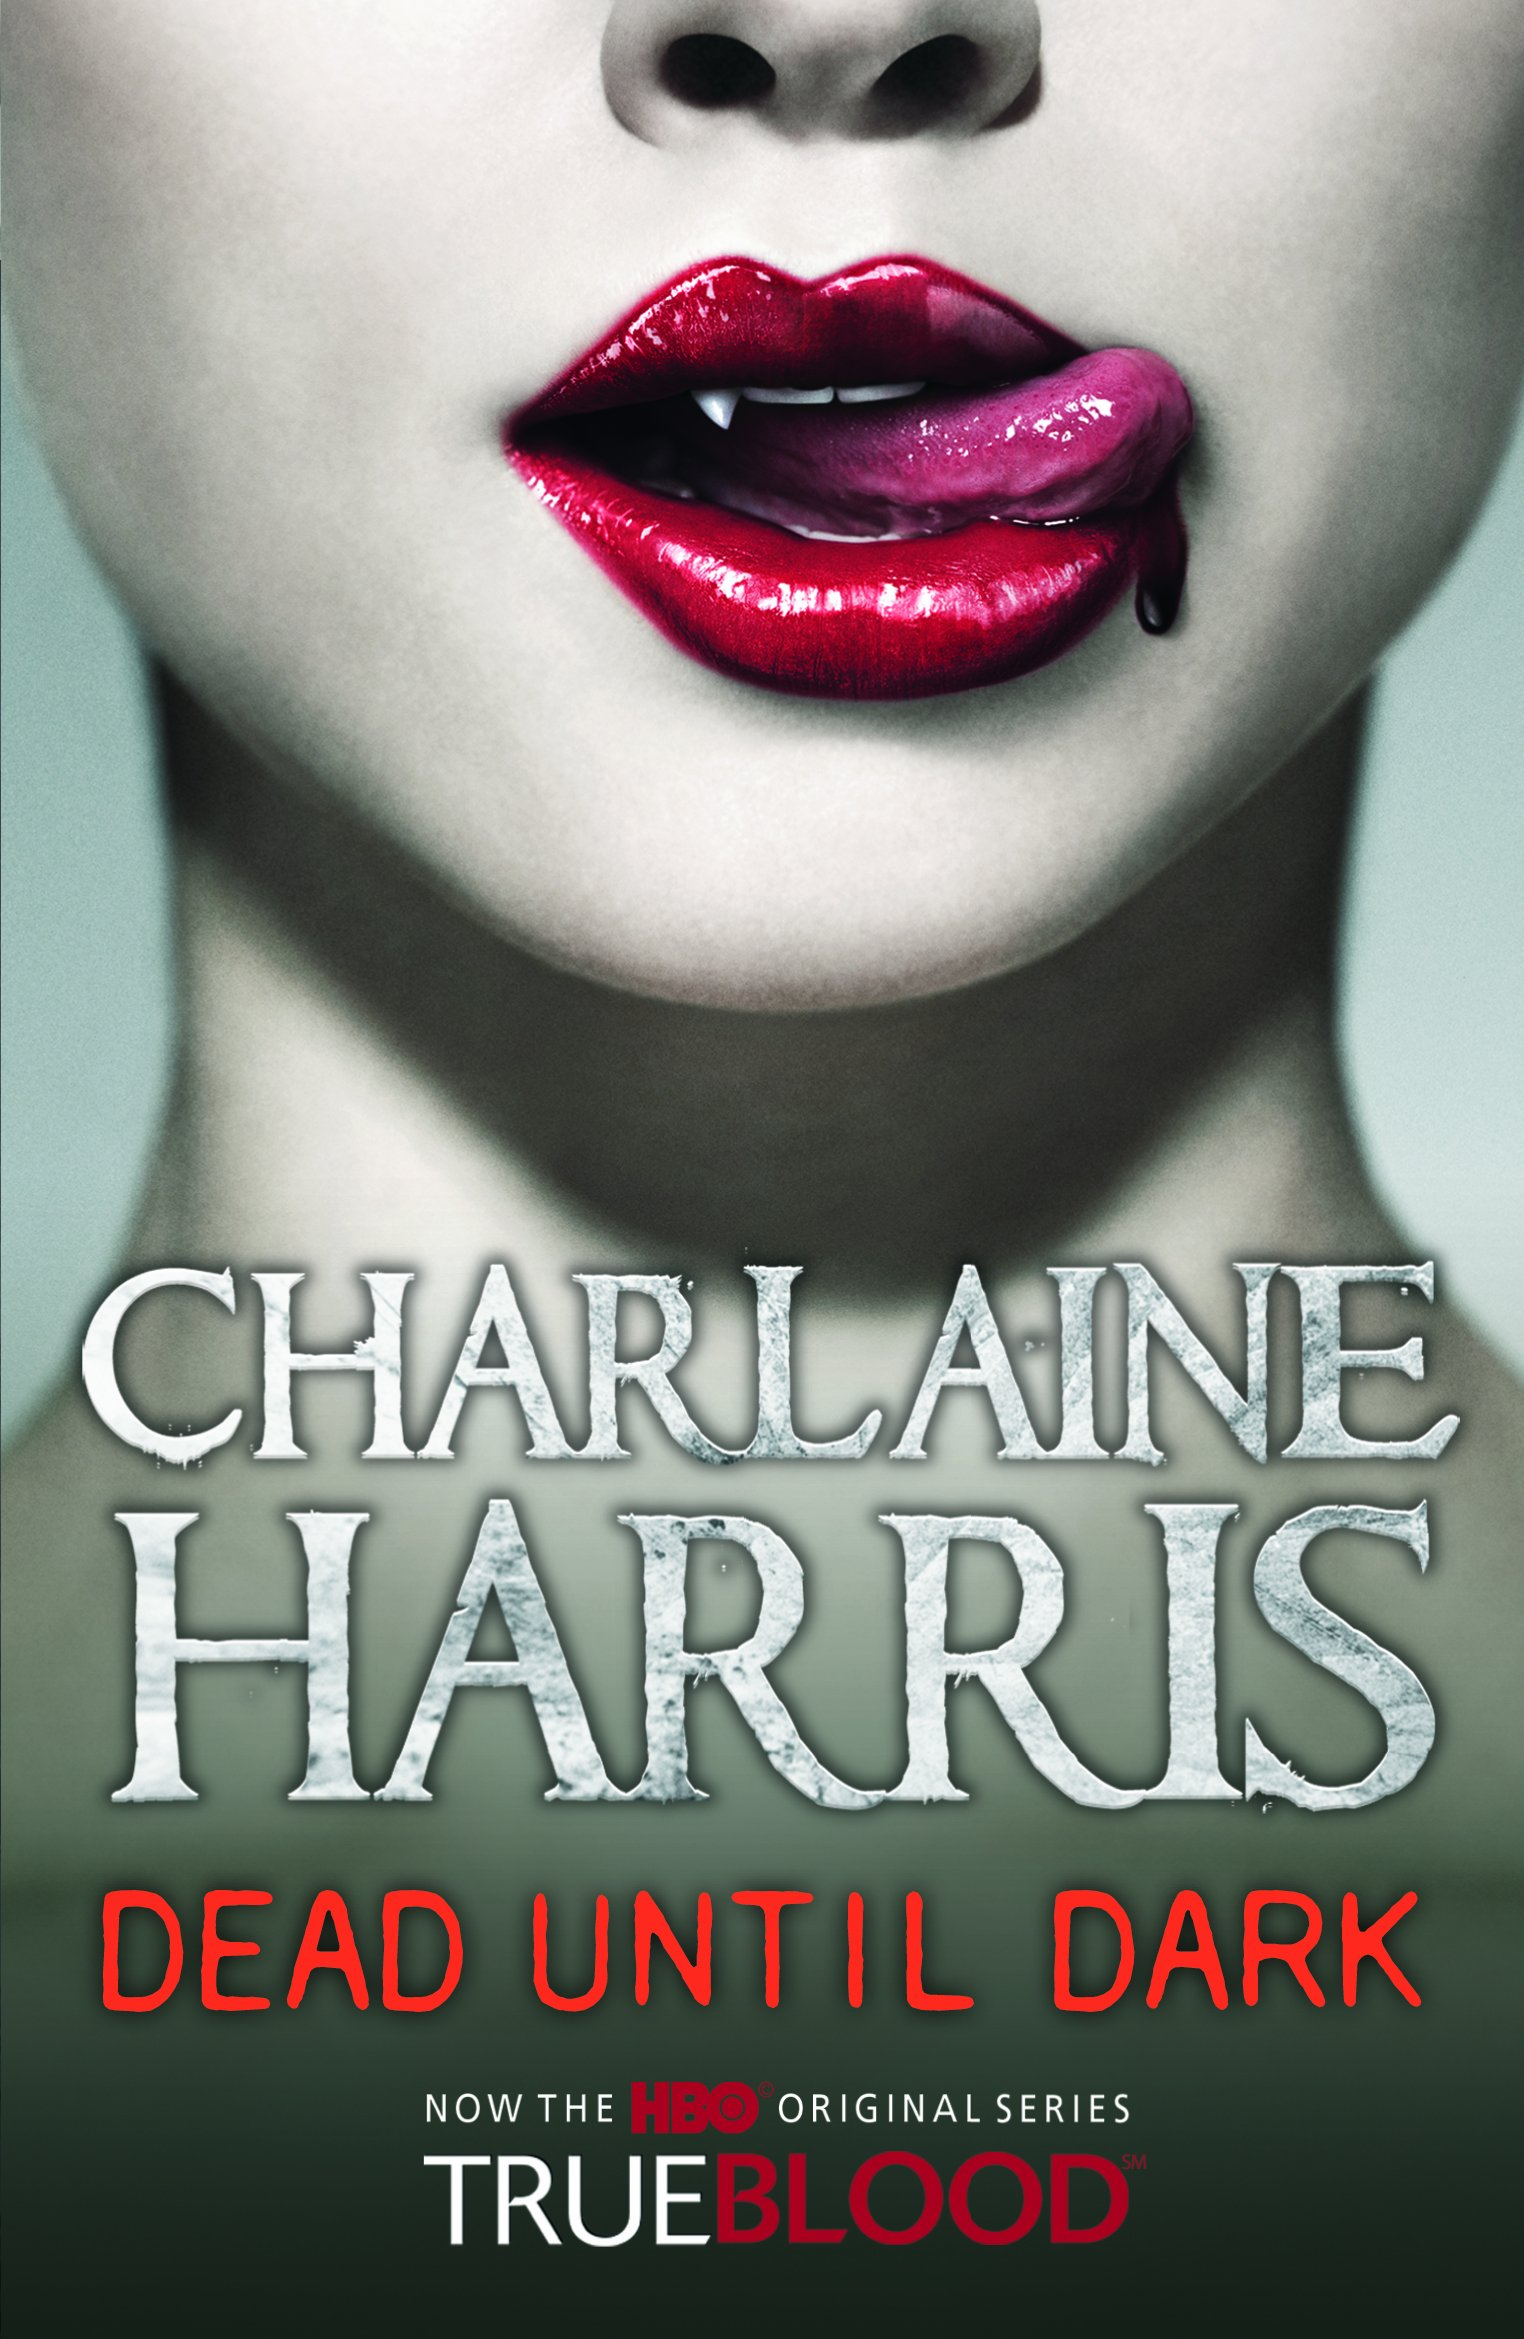 Dead Until Dark: A True Blood Novel: 1 (sookie Stackhouse Series):  Amazon: Charlaine Harris: 9780575089365: Books